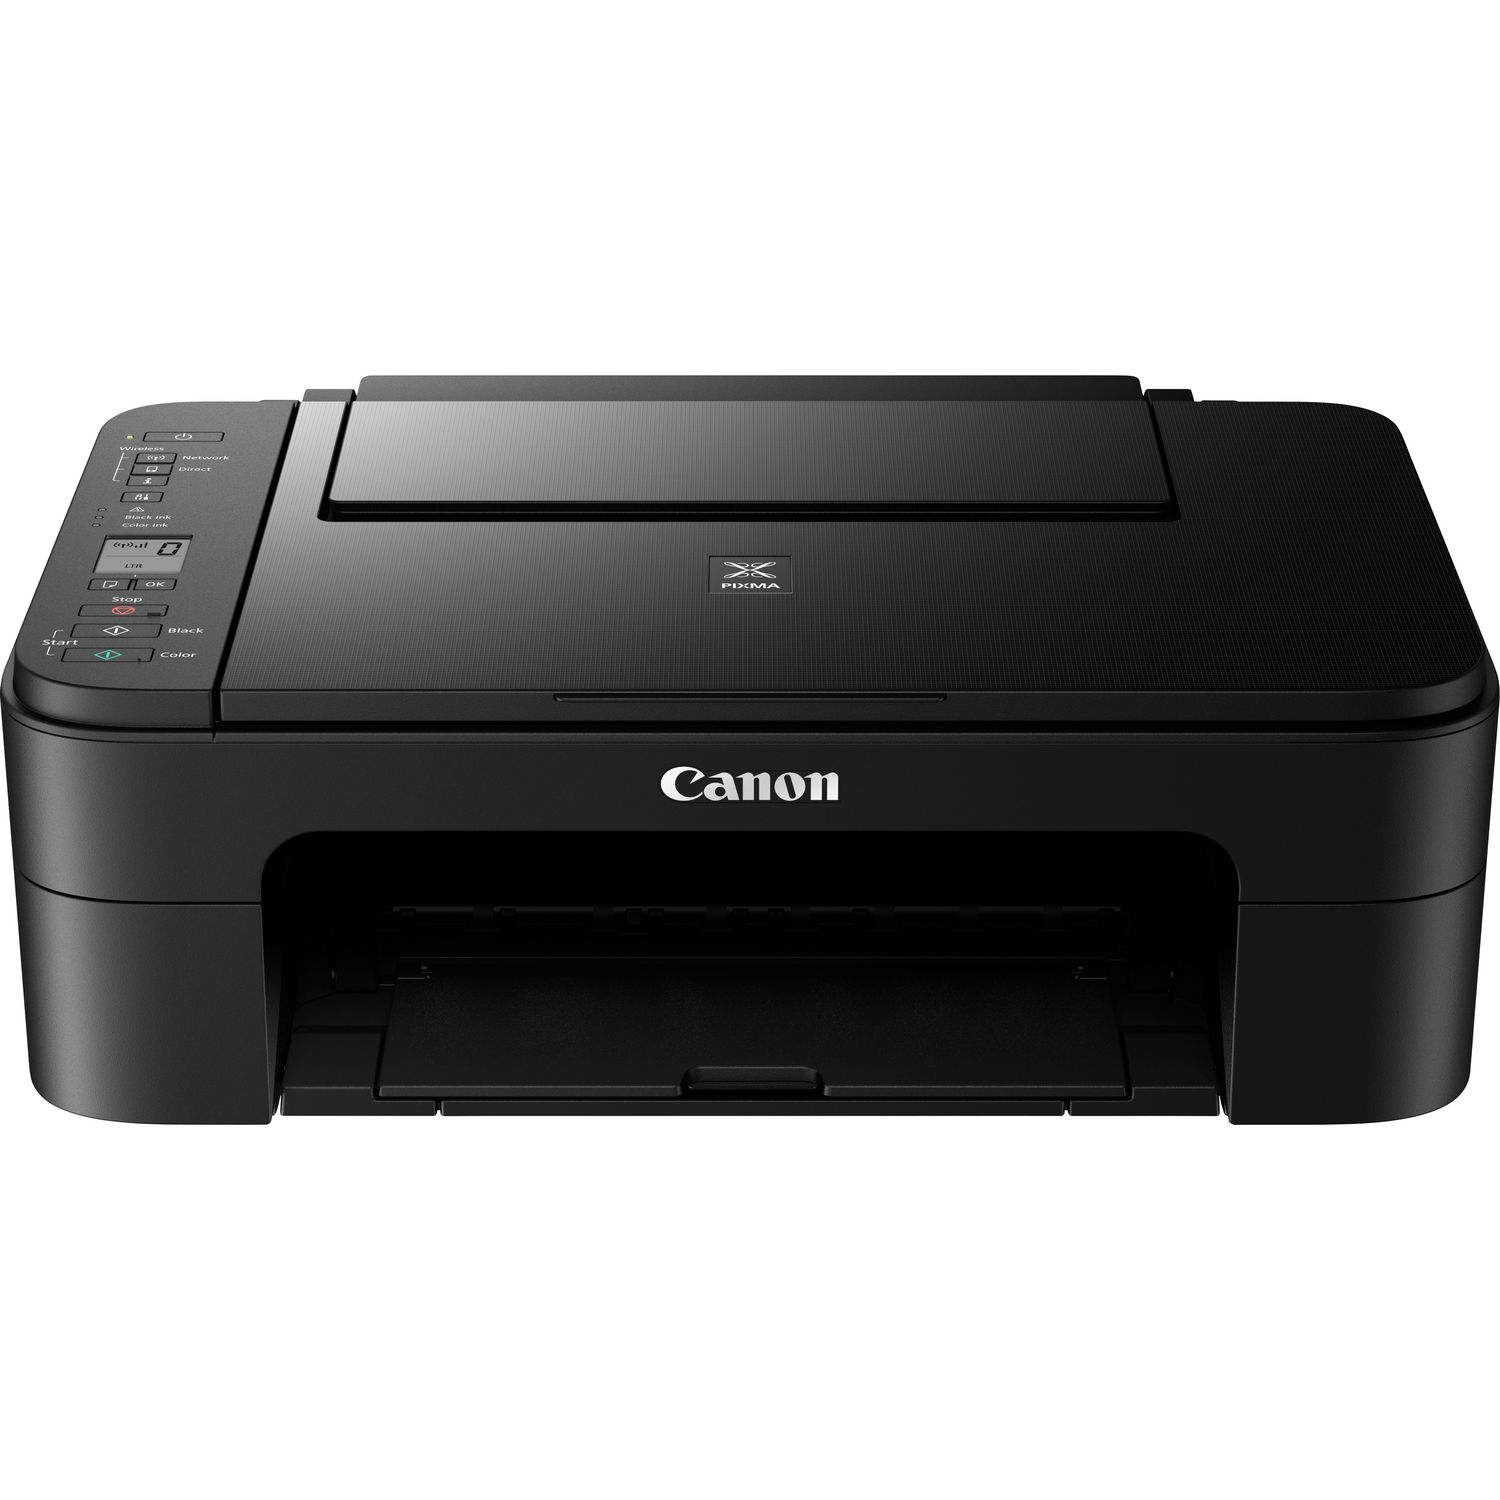 canon pixma ts3150 noir in imprimantes wifi canon france boutique. Black Bedroom Furniture Sets. Home Design Ideas